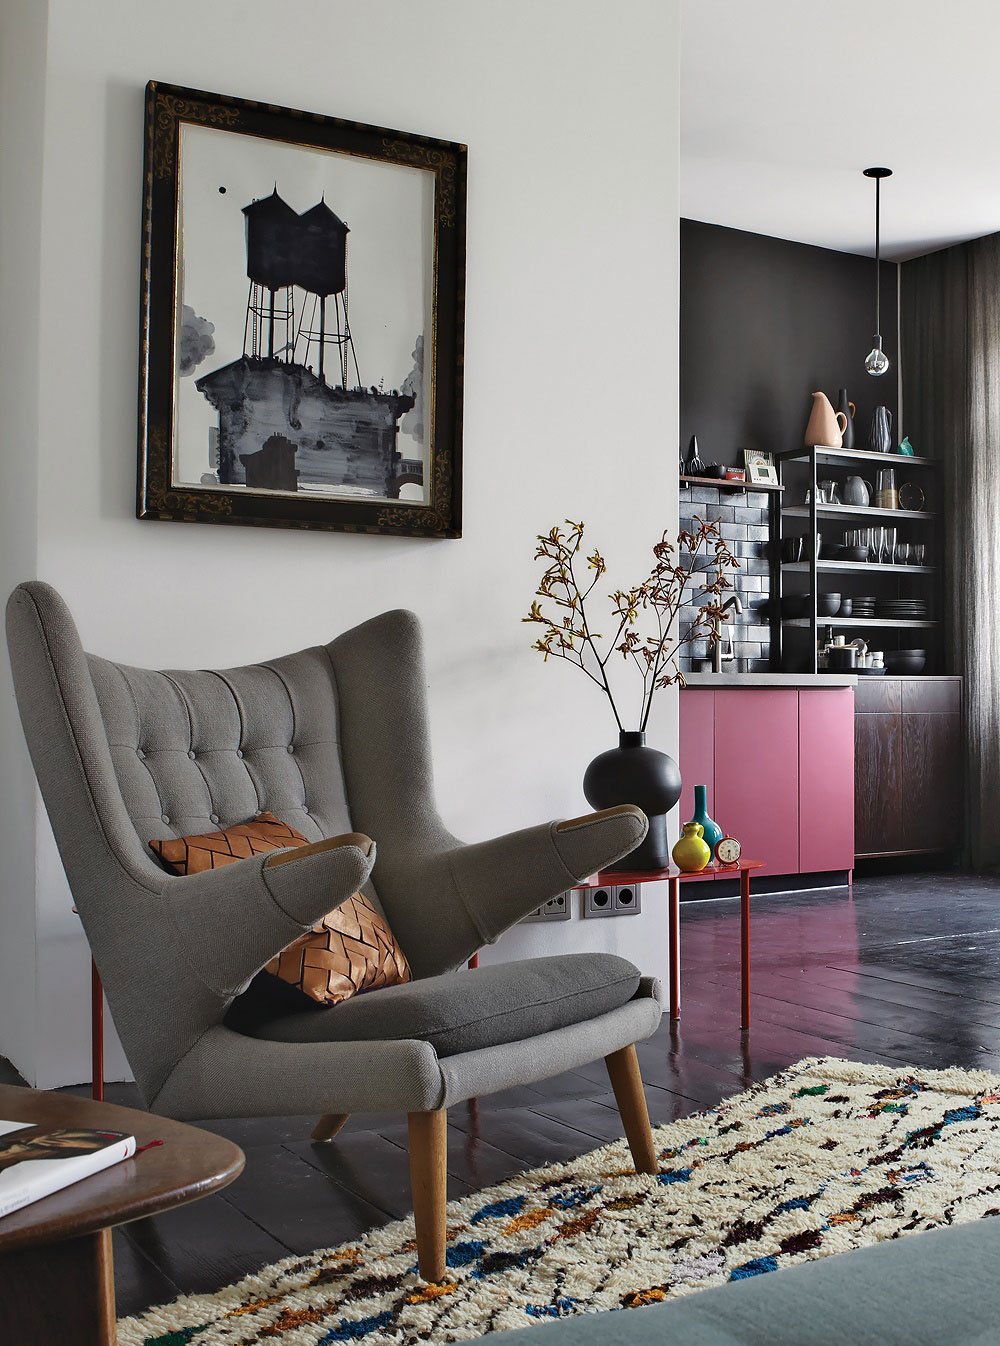 Chair, Rug, Art, Apartment Renovation in Berlin, Germany